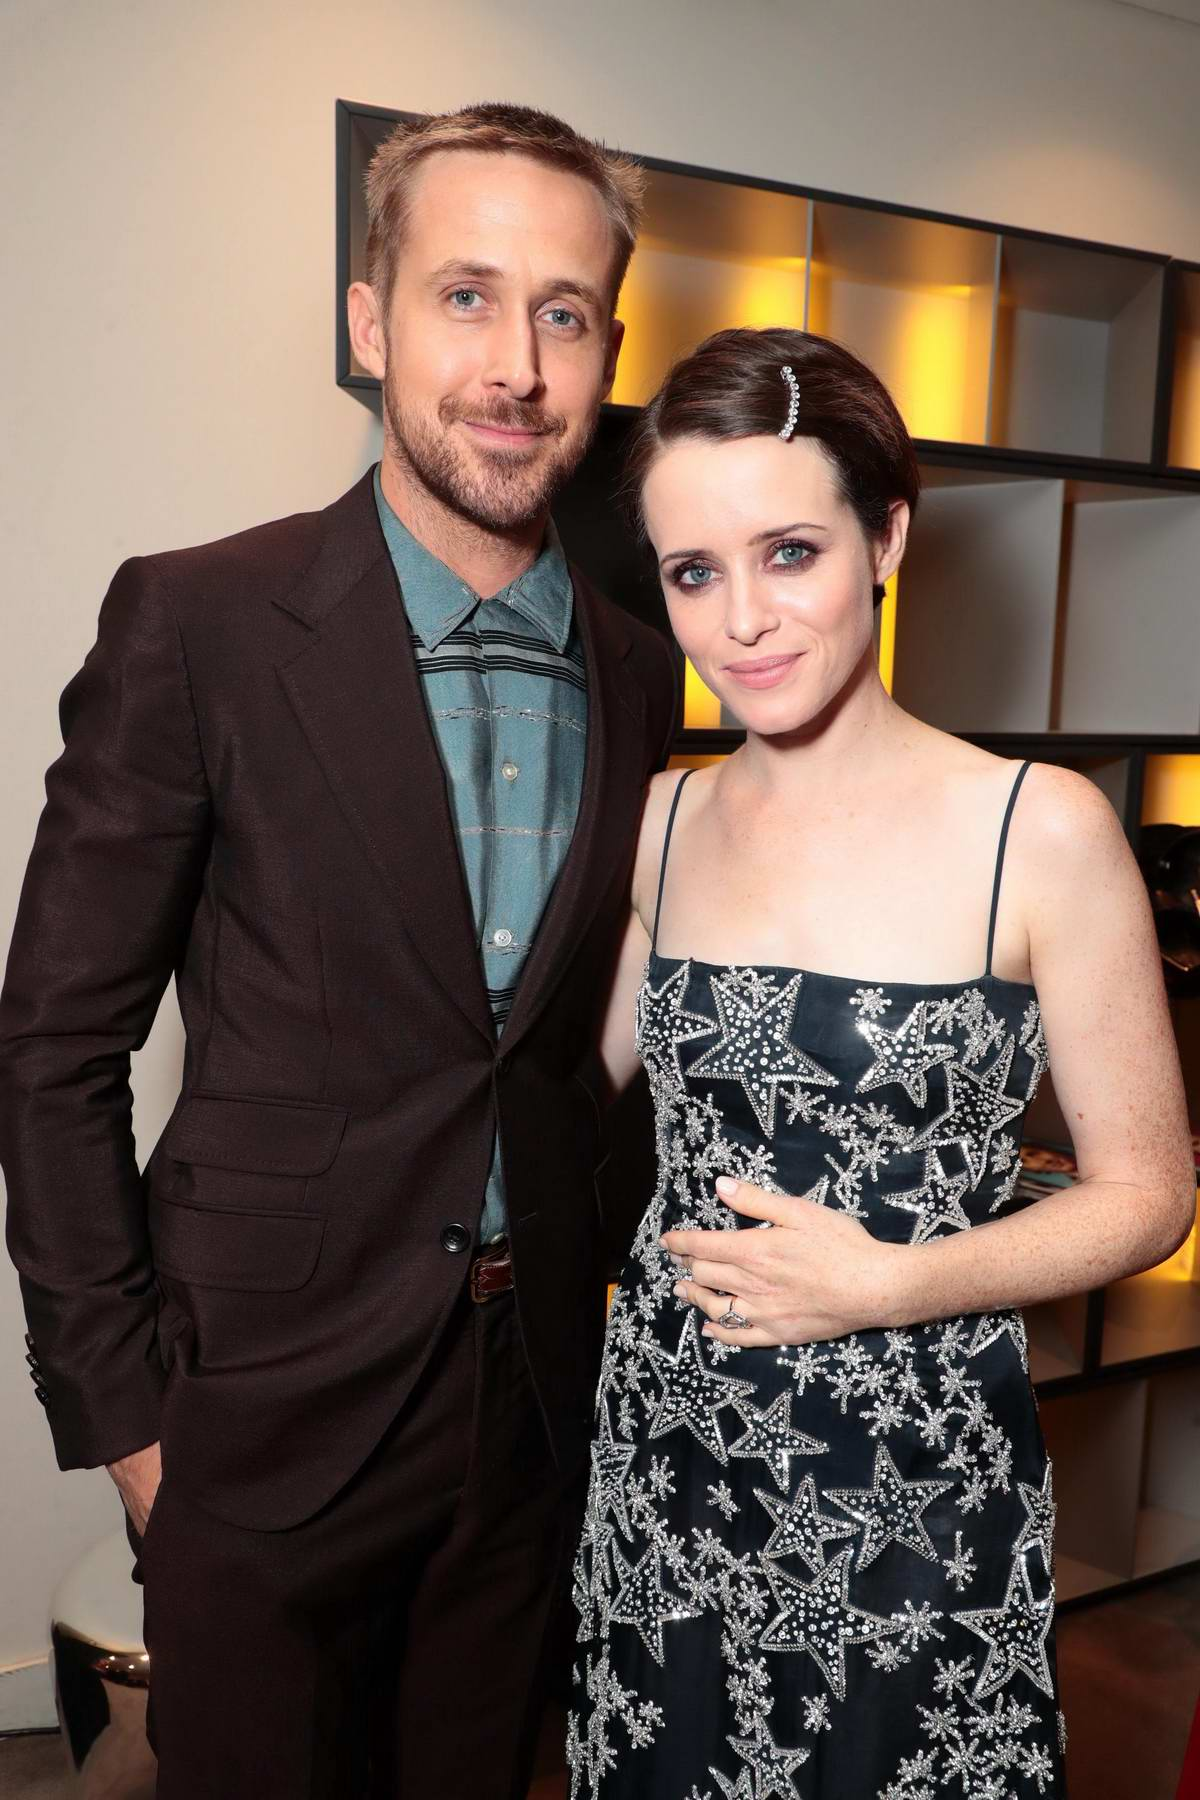 Claire Foy and Ryan Gosling attends the 'First Man' premiere during 2018 Toronto International Film Festival (TIFF 2018) in Toronto, Canada